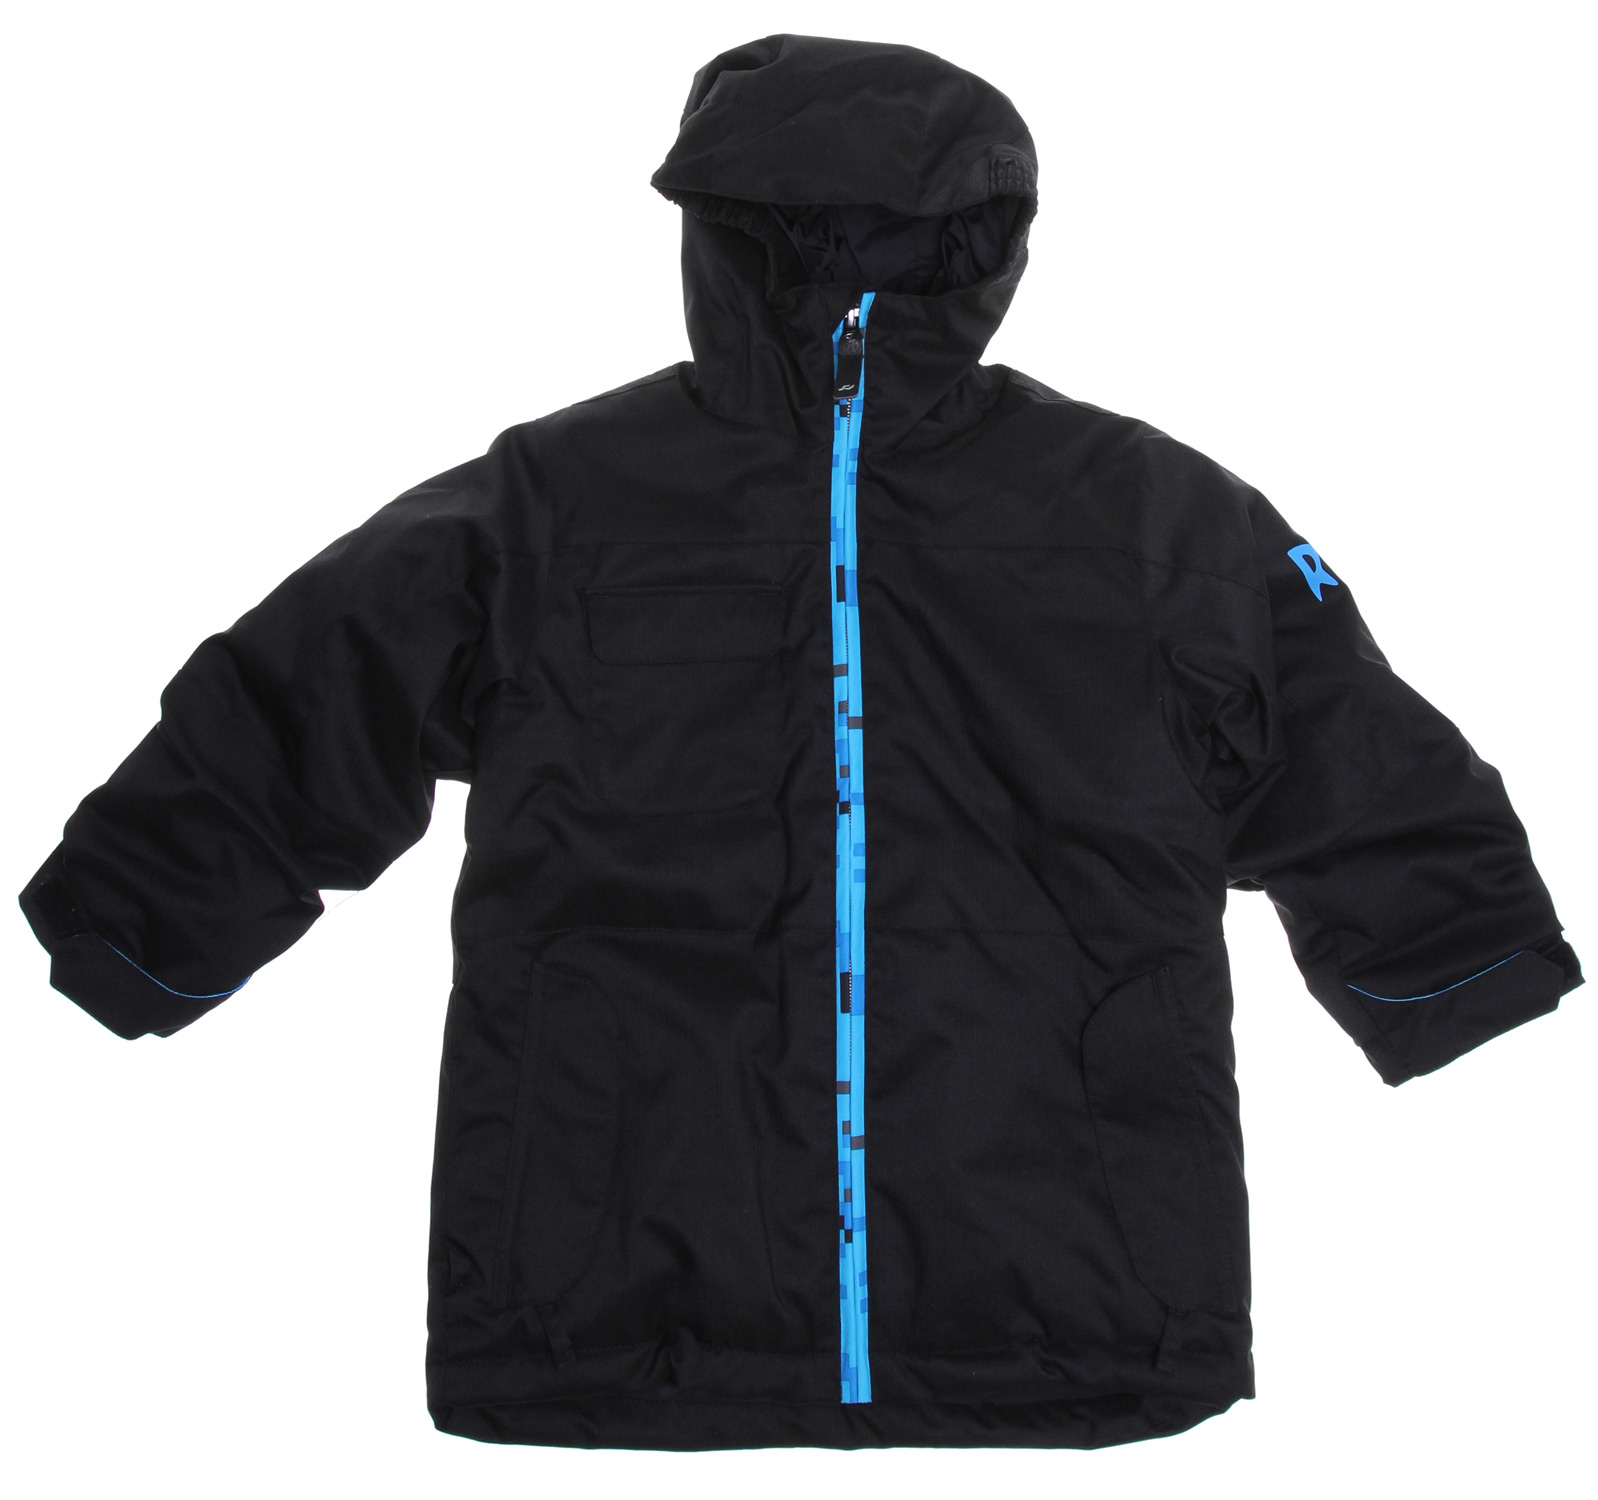 "Snowboard Built to keep your little one cozy and dry, the Joker boy's snowboard jacket features 150g Poly Insulation, 3k/2k waterproof breathable rating to keep them warm & dry while putting out the cool vibes.Key Features of the Ride Joker Snowboard Jacket: 3,000mm Waterproof 2,000g Breathability 150g Poly Insulated youth snowboard jacket with Tricot Lining Growth Seams at the Sleeve Hem That Extend out 1 1/2"" in Length Velvety Comfort Chin Guard Adjustable Elastic Cuffs with Glove Hook Loops Attached Hood Adjustable Elastic Hood Adjustments Inner Front Pocket One-Handed Draw Cord Front Micro-Fleece Lined Toaster Pockets Lift Ticket Self-Fabric Loop - $77.95"